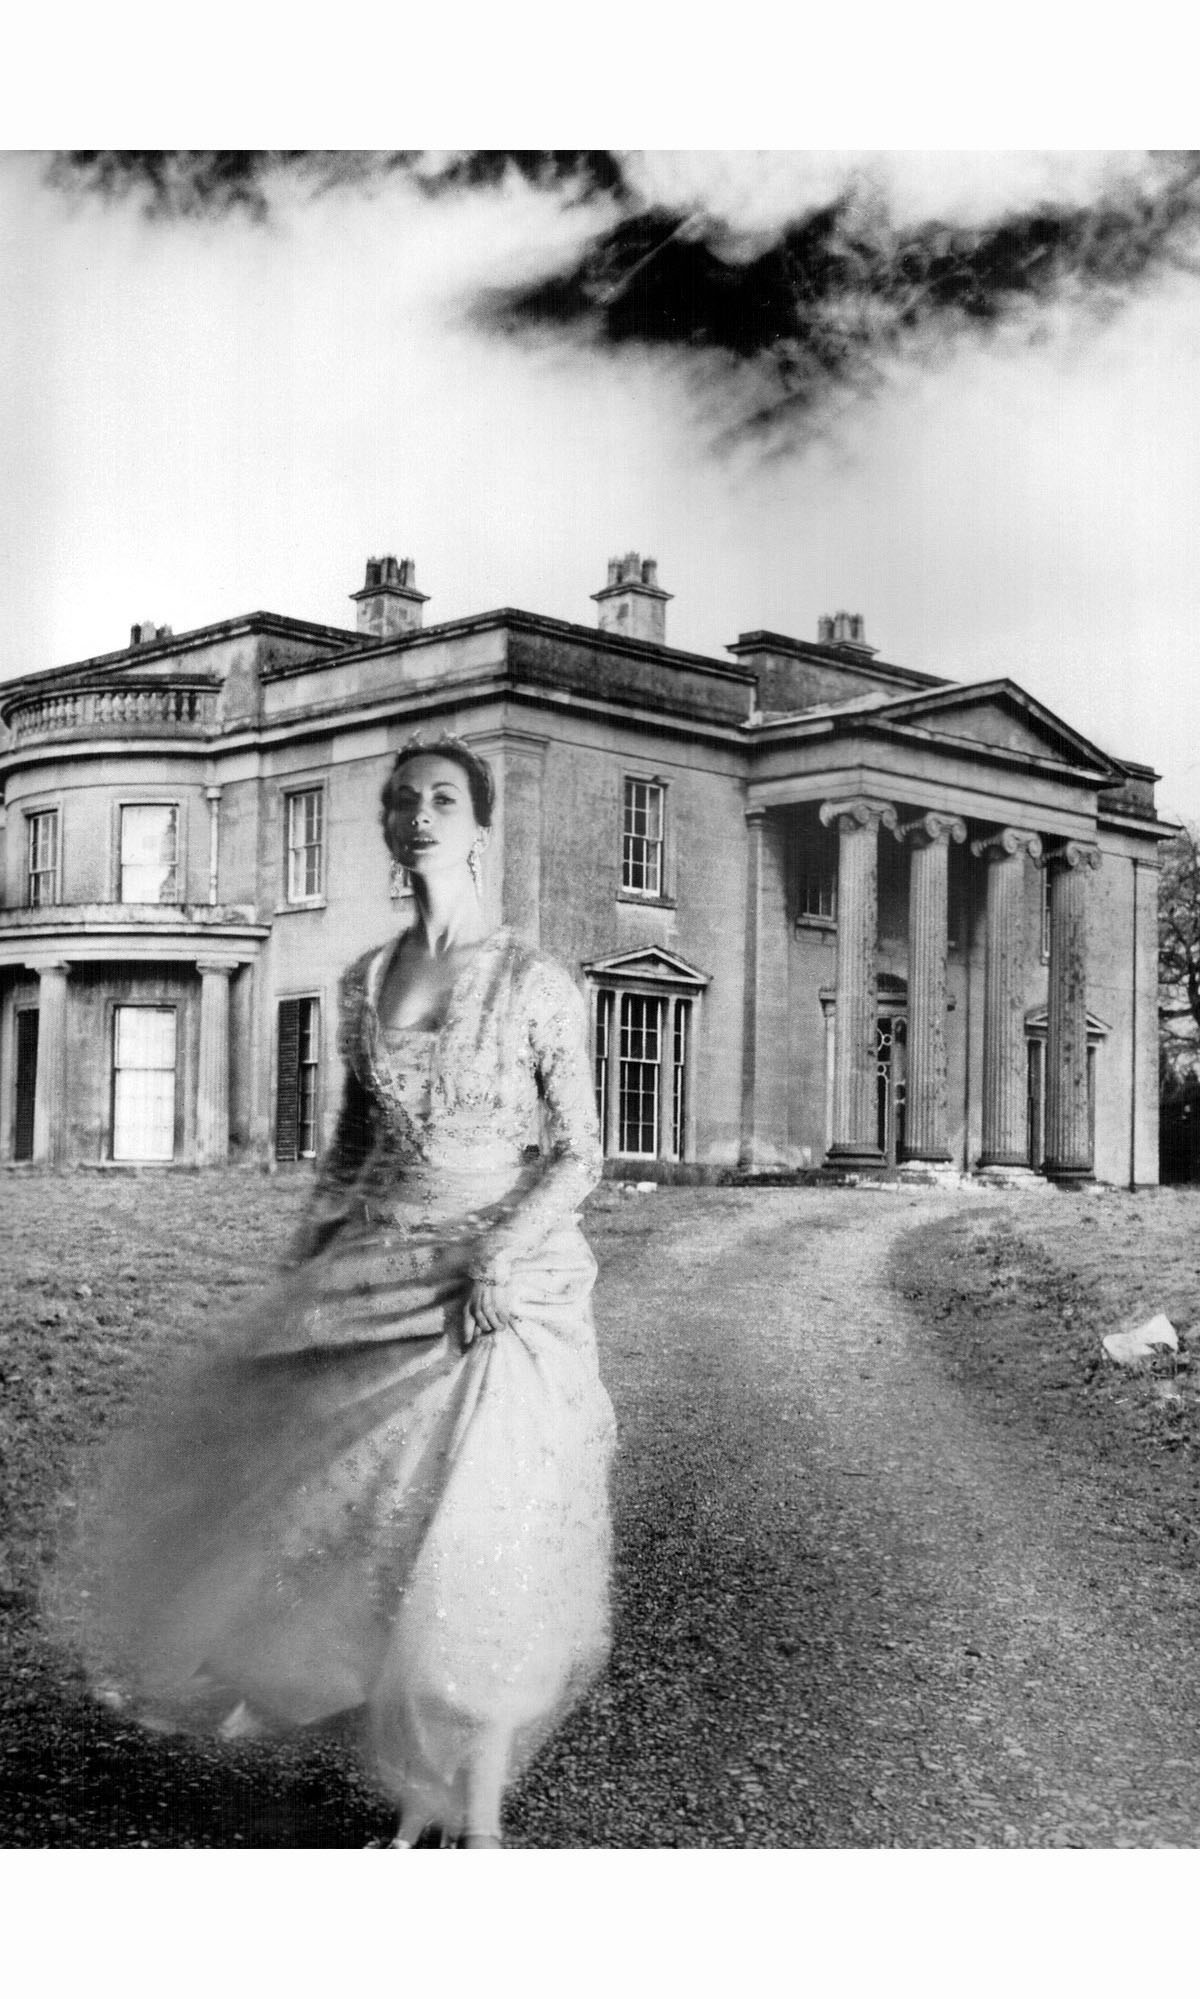 norman hartnell copy pleasurephoto della oake wearing evening gown by norman hartnell